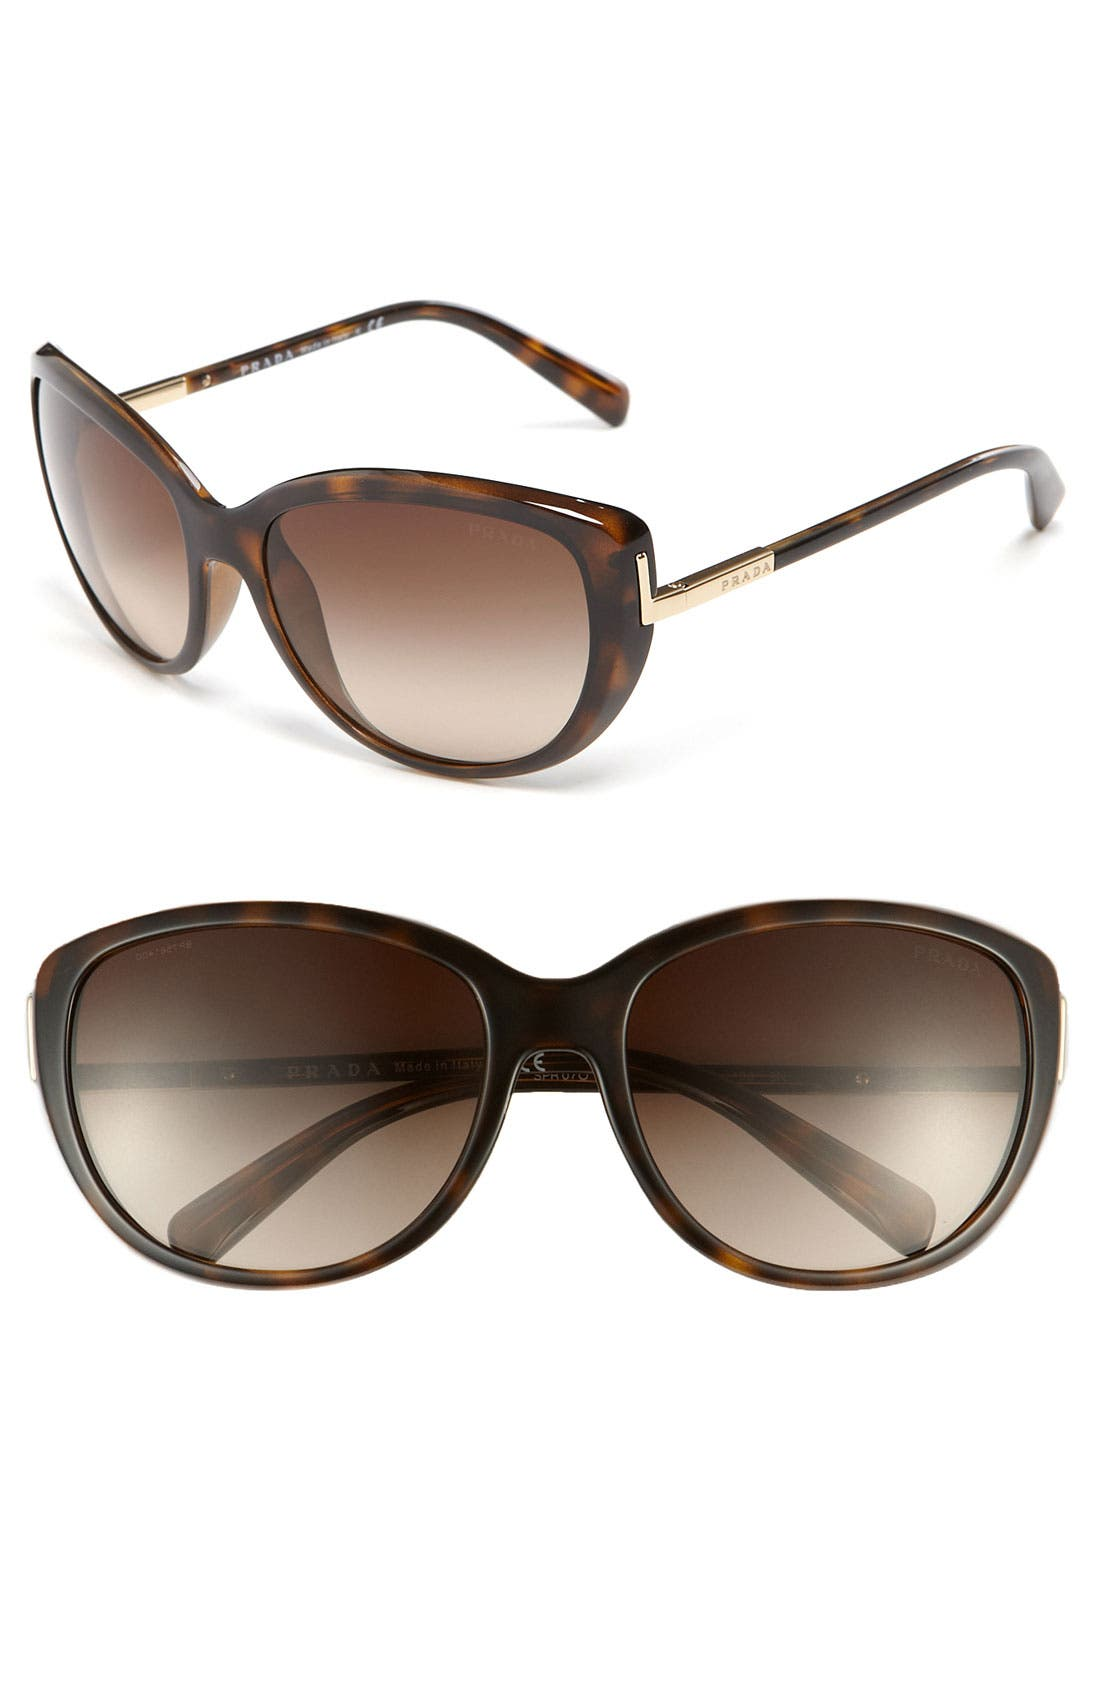 Main Image - Prada 59mm Retro Sunglasses